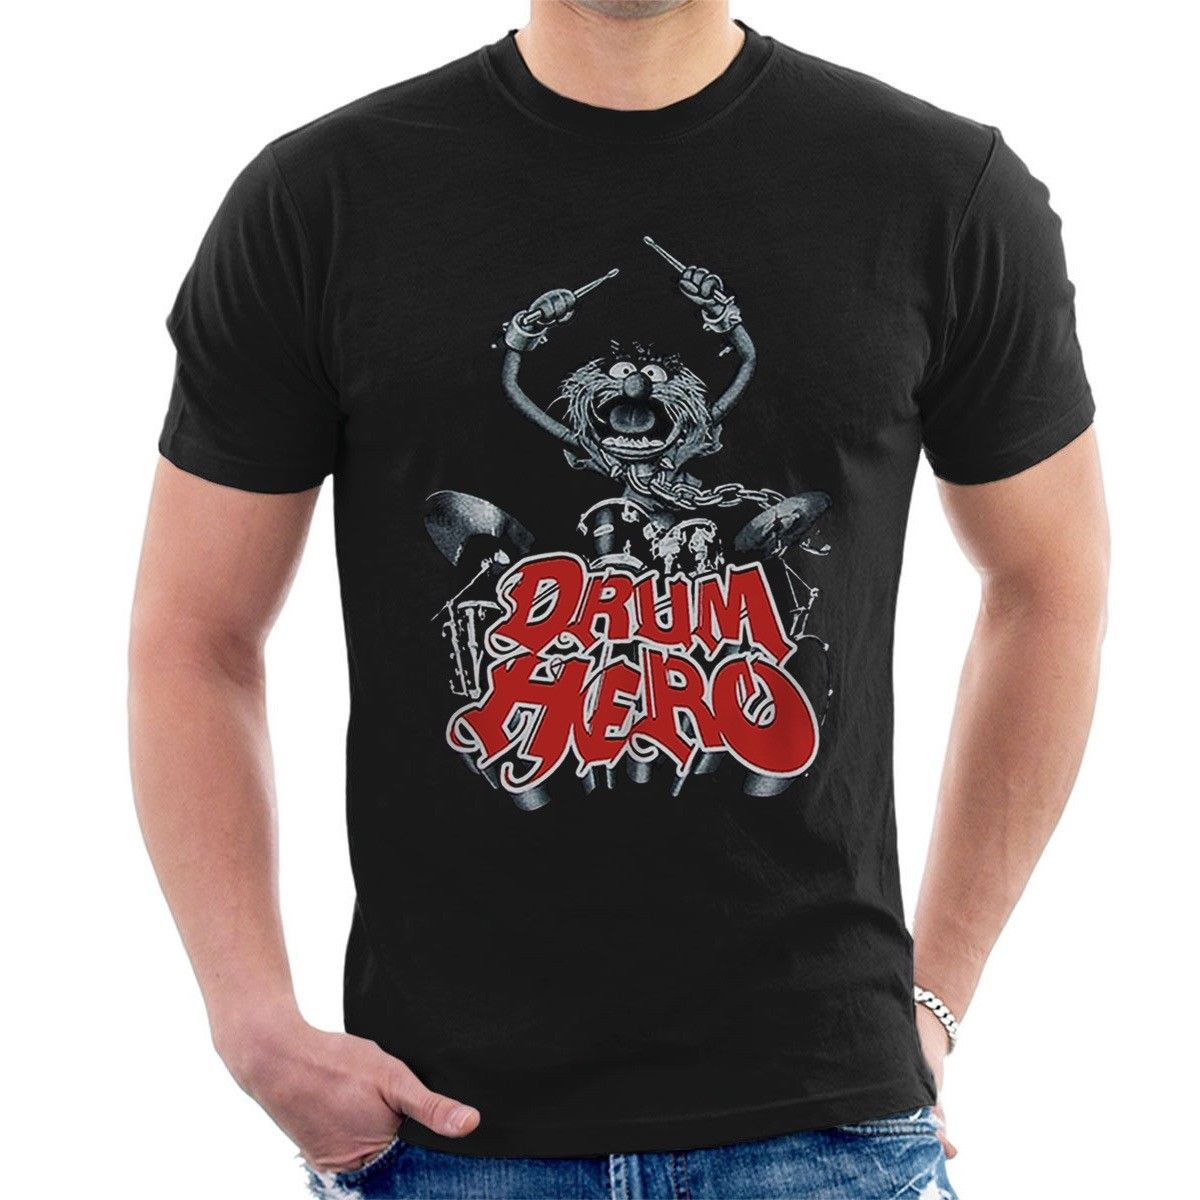 Candid Drum Hero T-shirt Animal Drummer Show Muppet Inspired Paiste Zildjian Tee A01 New T Shirts Funny Tops Tee New Free Shipping Tops & Tees